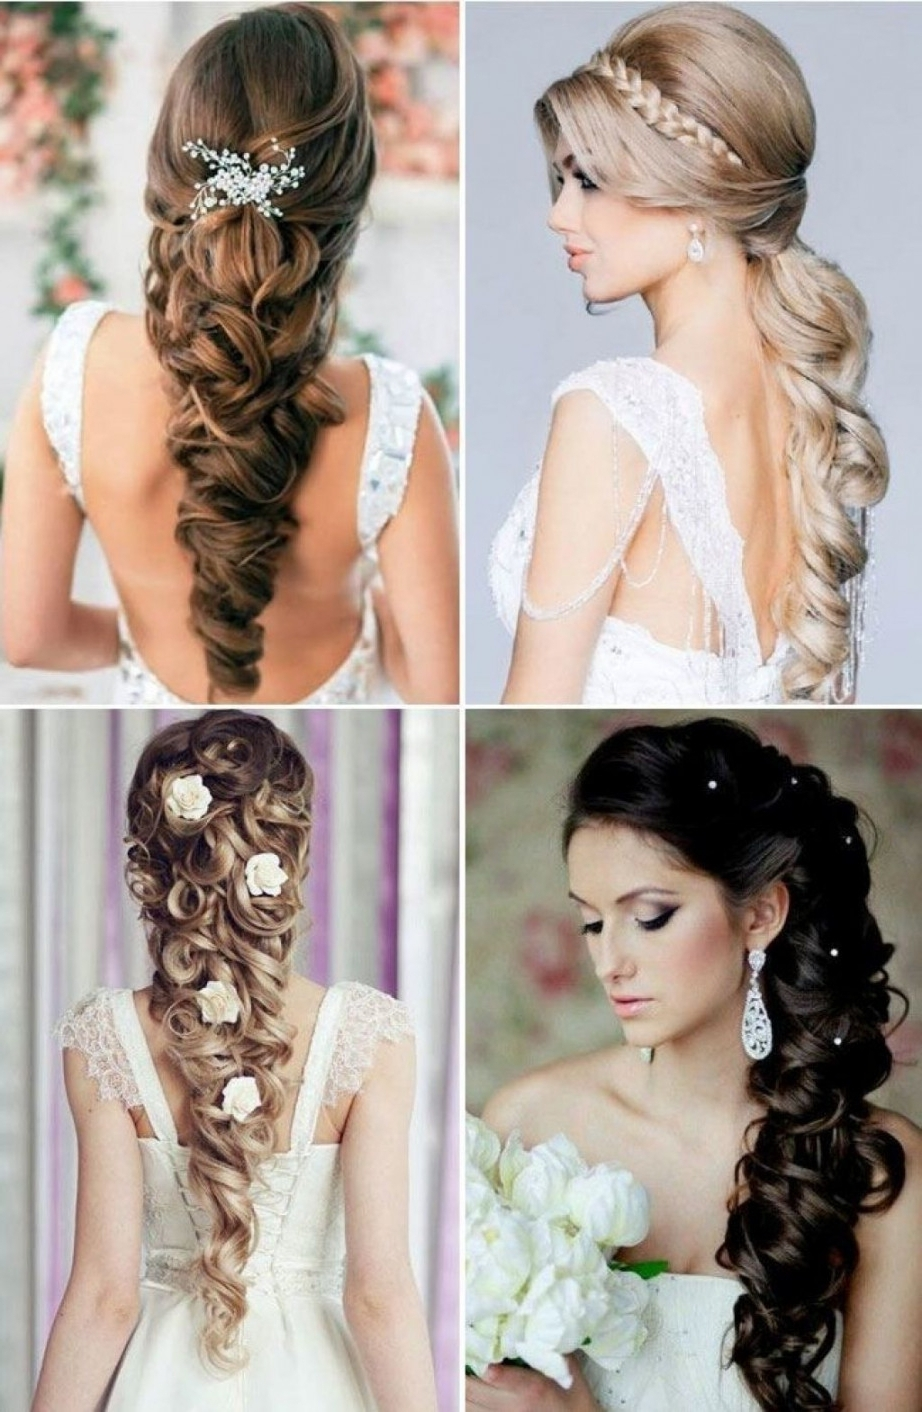 Inspiring Vintage Updo Hairstyles For Long Hair Women Medium Within Vintage Updo Hairstyles (View 9 of 15)